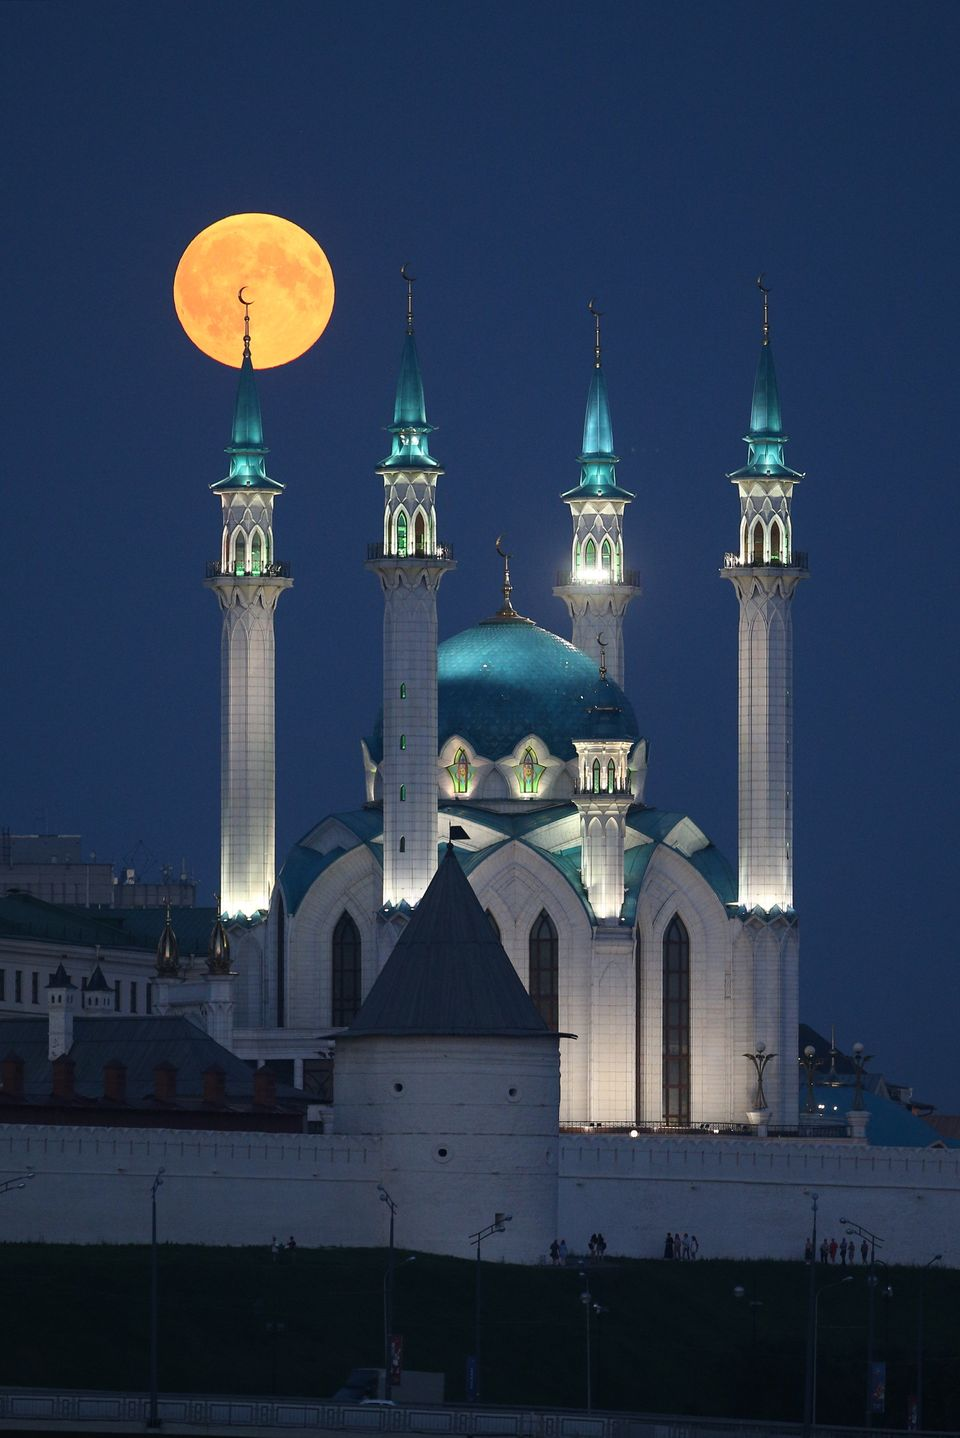 Over the Qolsharif Mosque in Kazan,